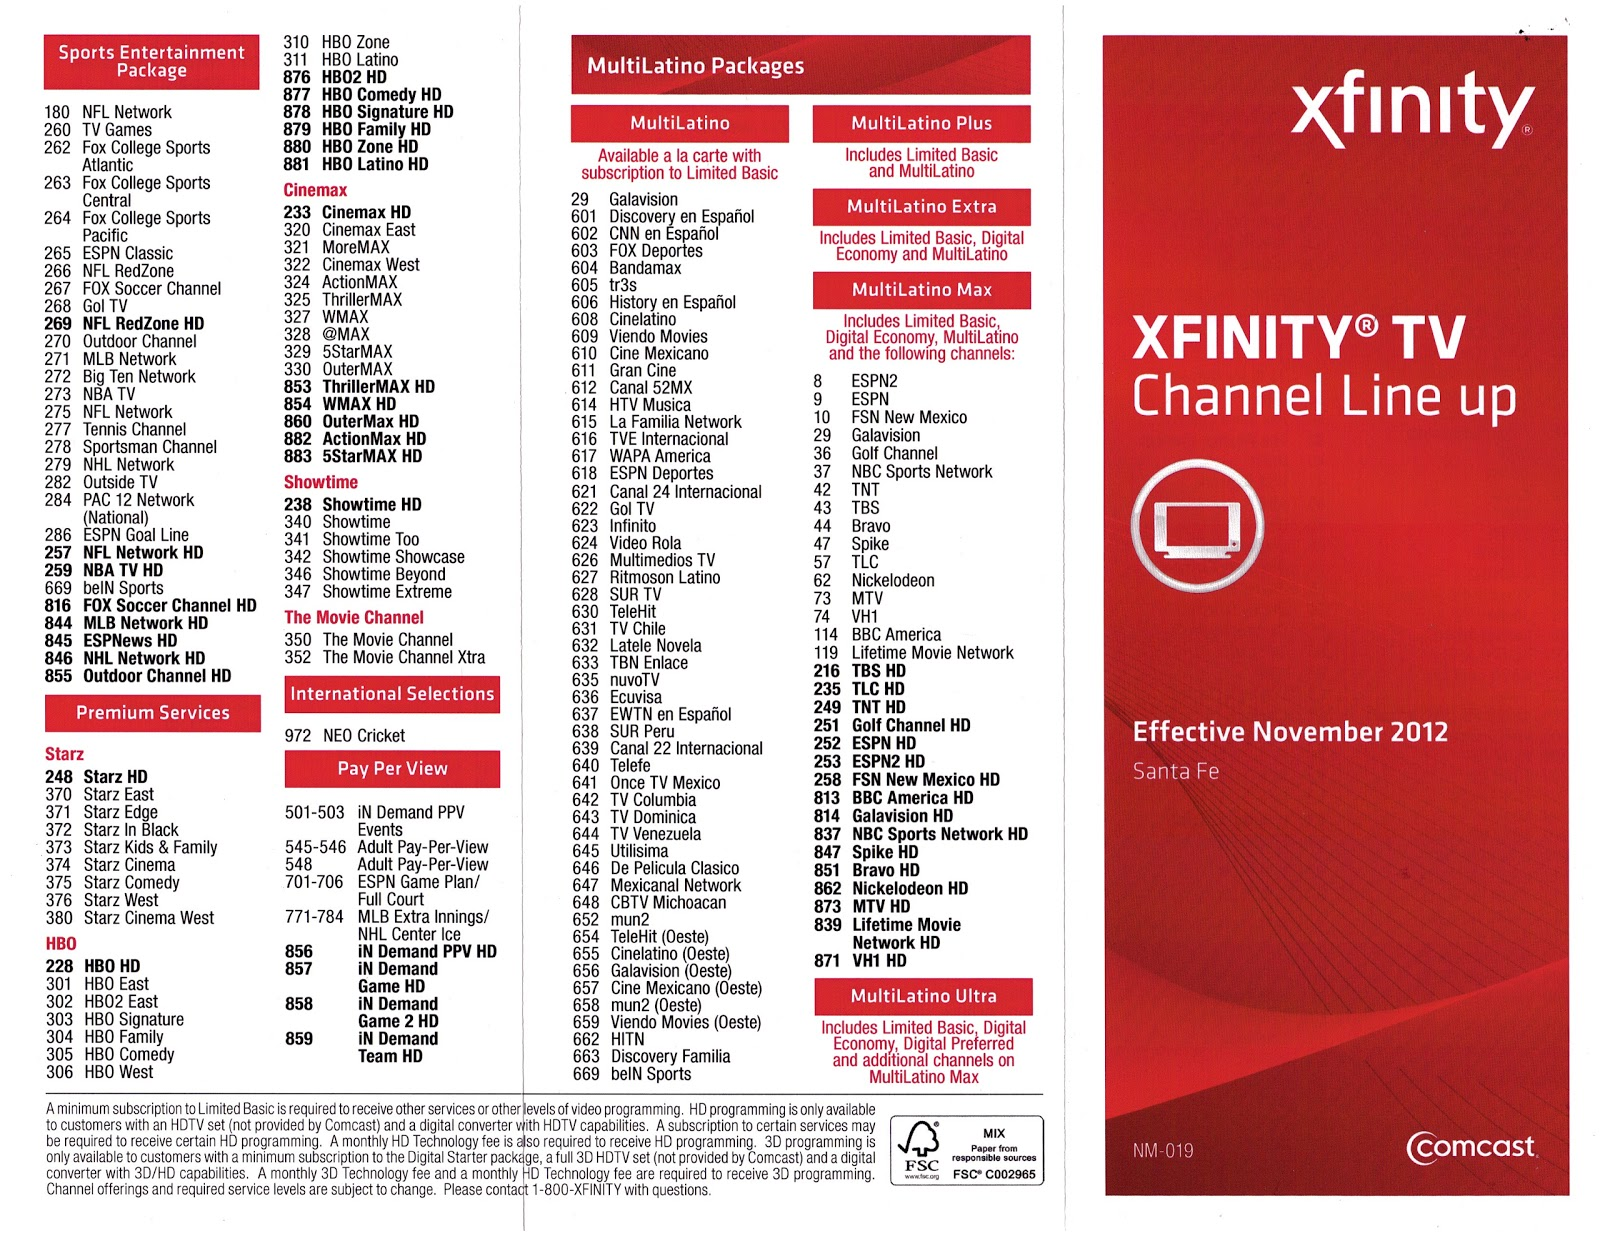 Comcast Xfinity Channel Line Up Comcast Xfinity Albuquerque